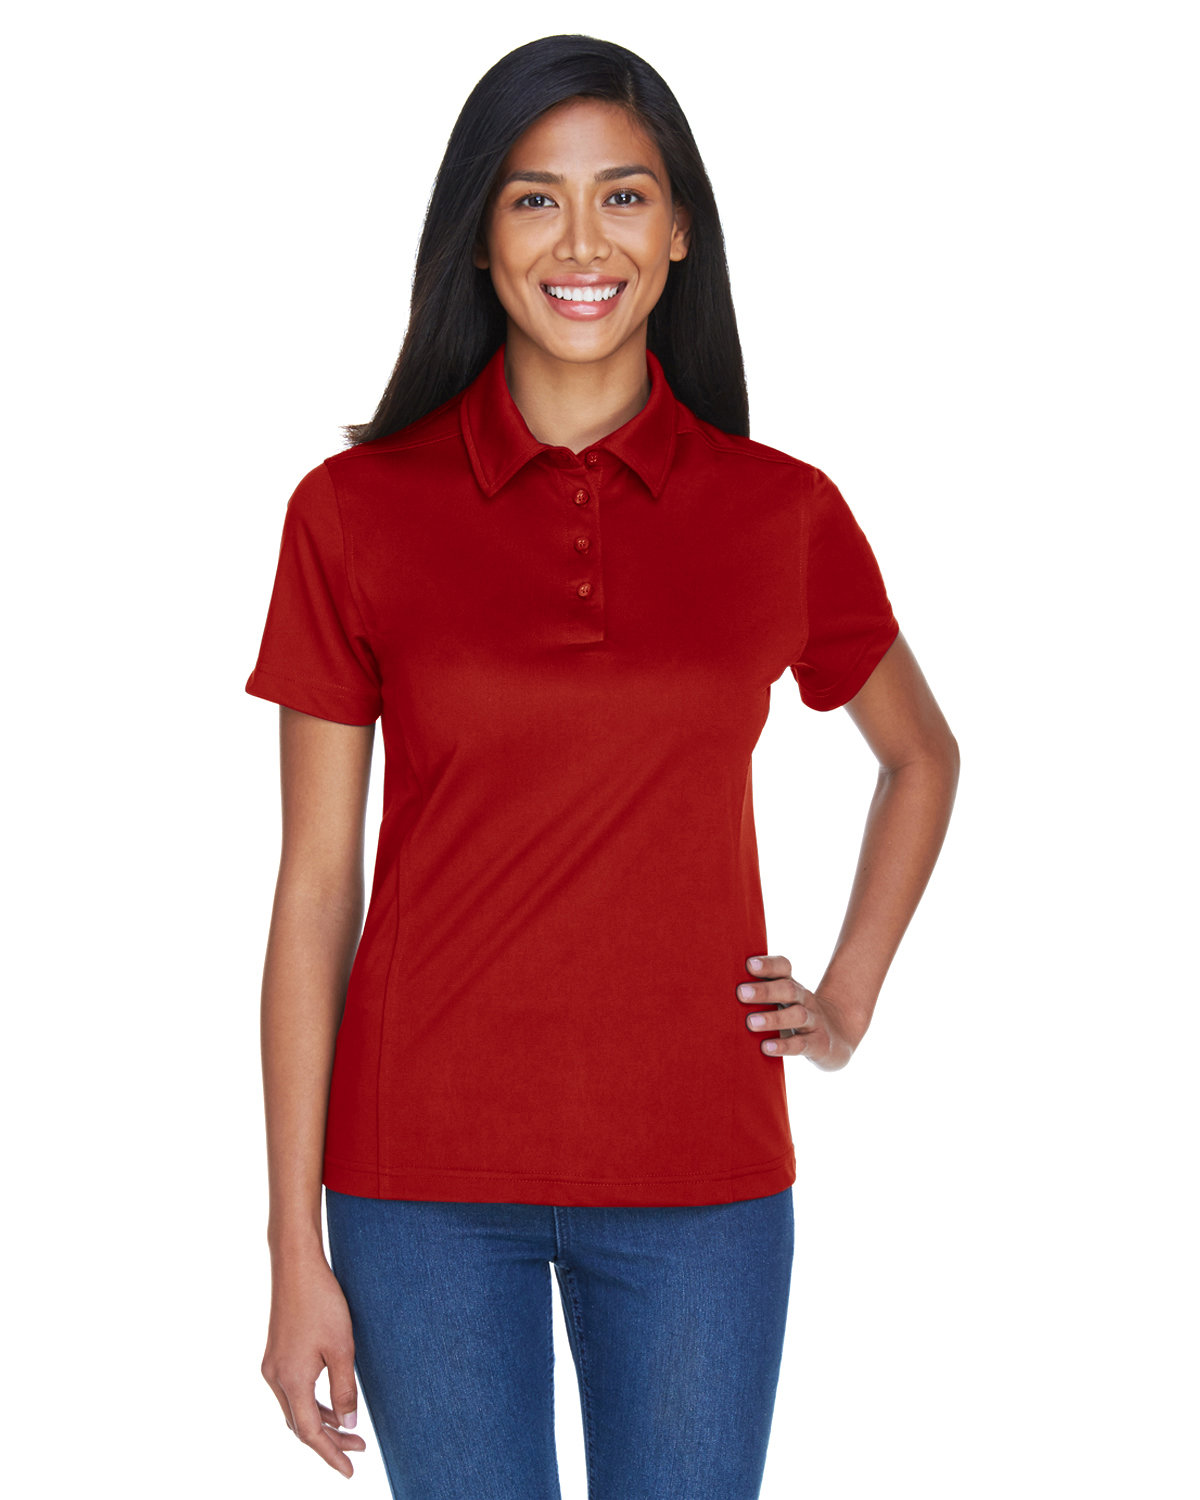 Extreme Ladies' Eperformance™ Shift Snag Protection Plus Polo CLASSIC RED